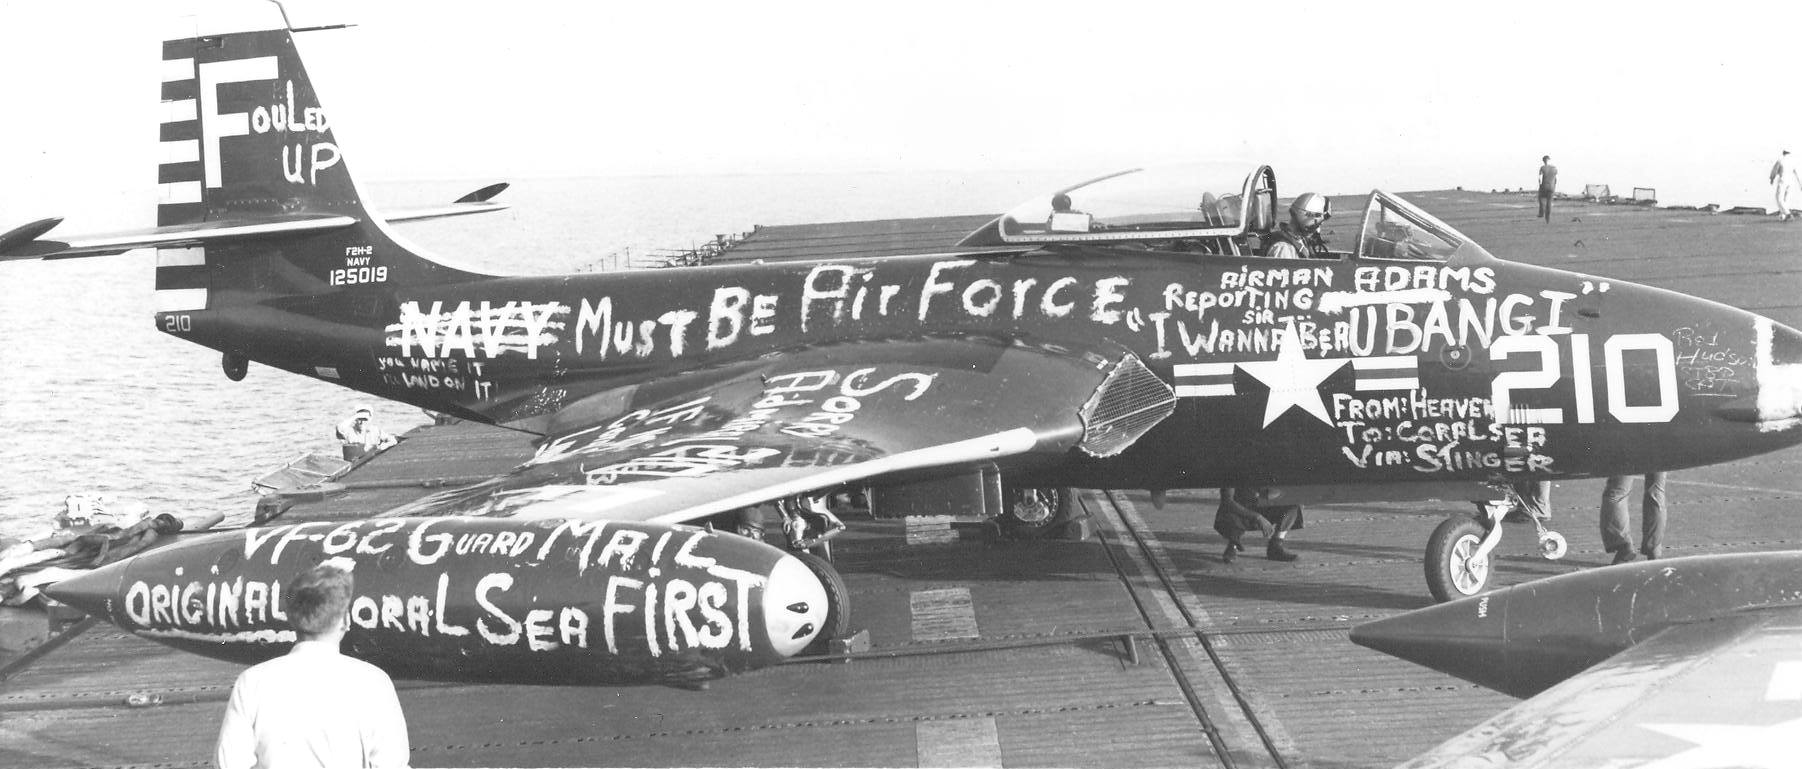 'Hi Resolution Photo Click Here' from the web at 'http://www.usscoralsea.net/images/CVB43_VF-62_USS_Wasp_1952.jpg'